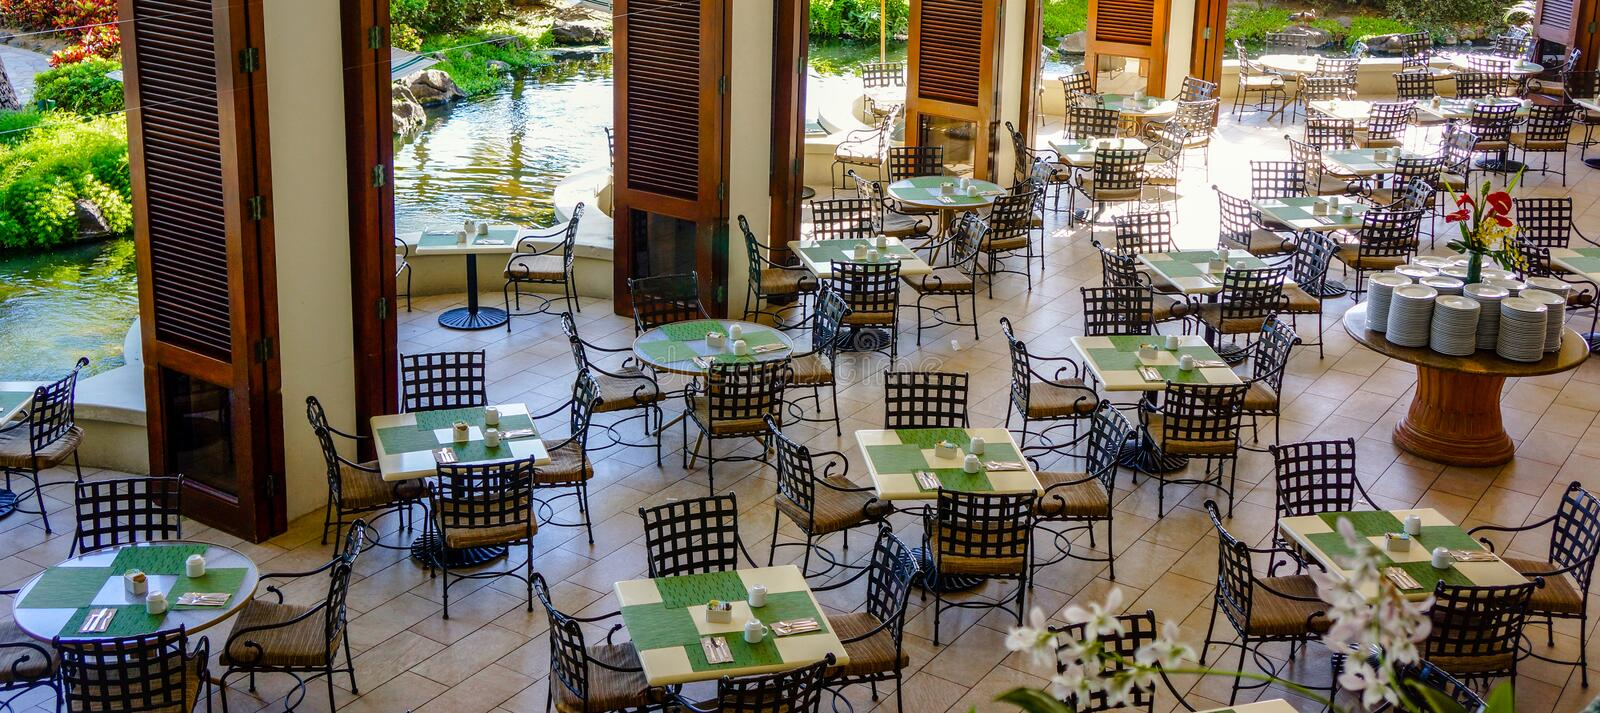 Empty Restaurant Tables and Chairs Awaiting Gueststy royalty free stock images